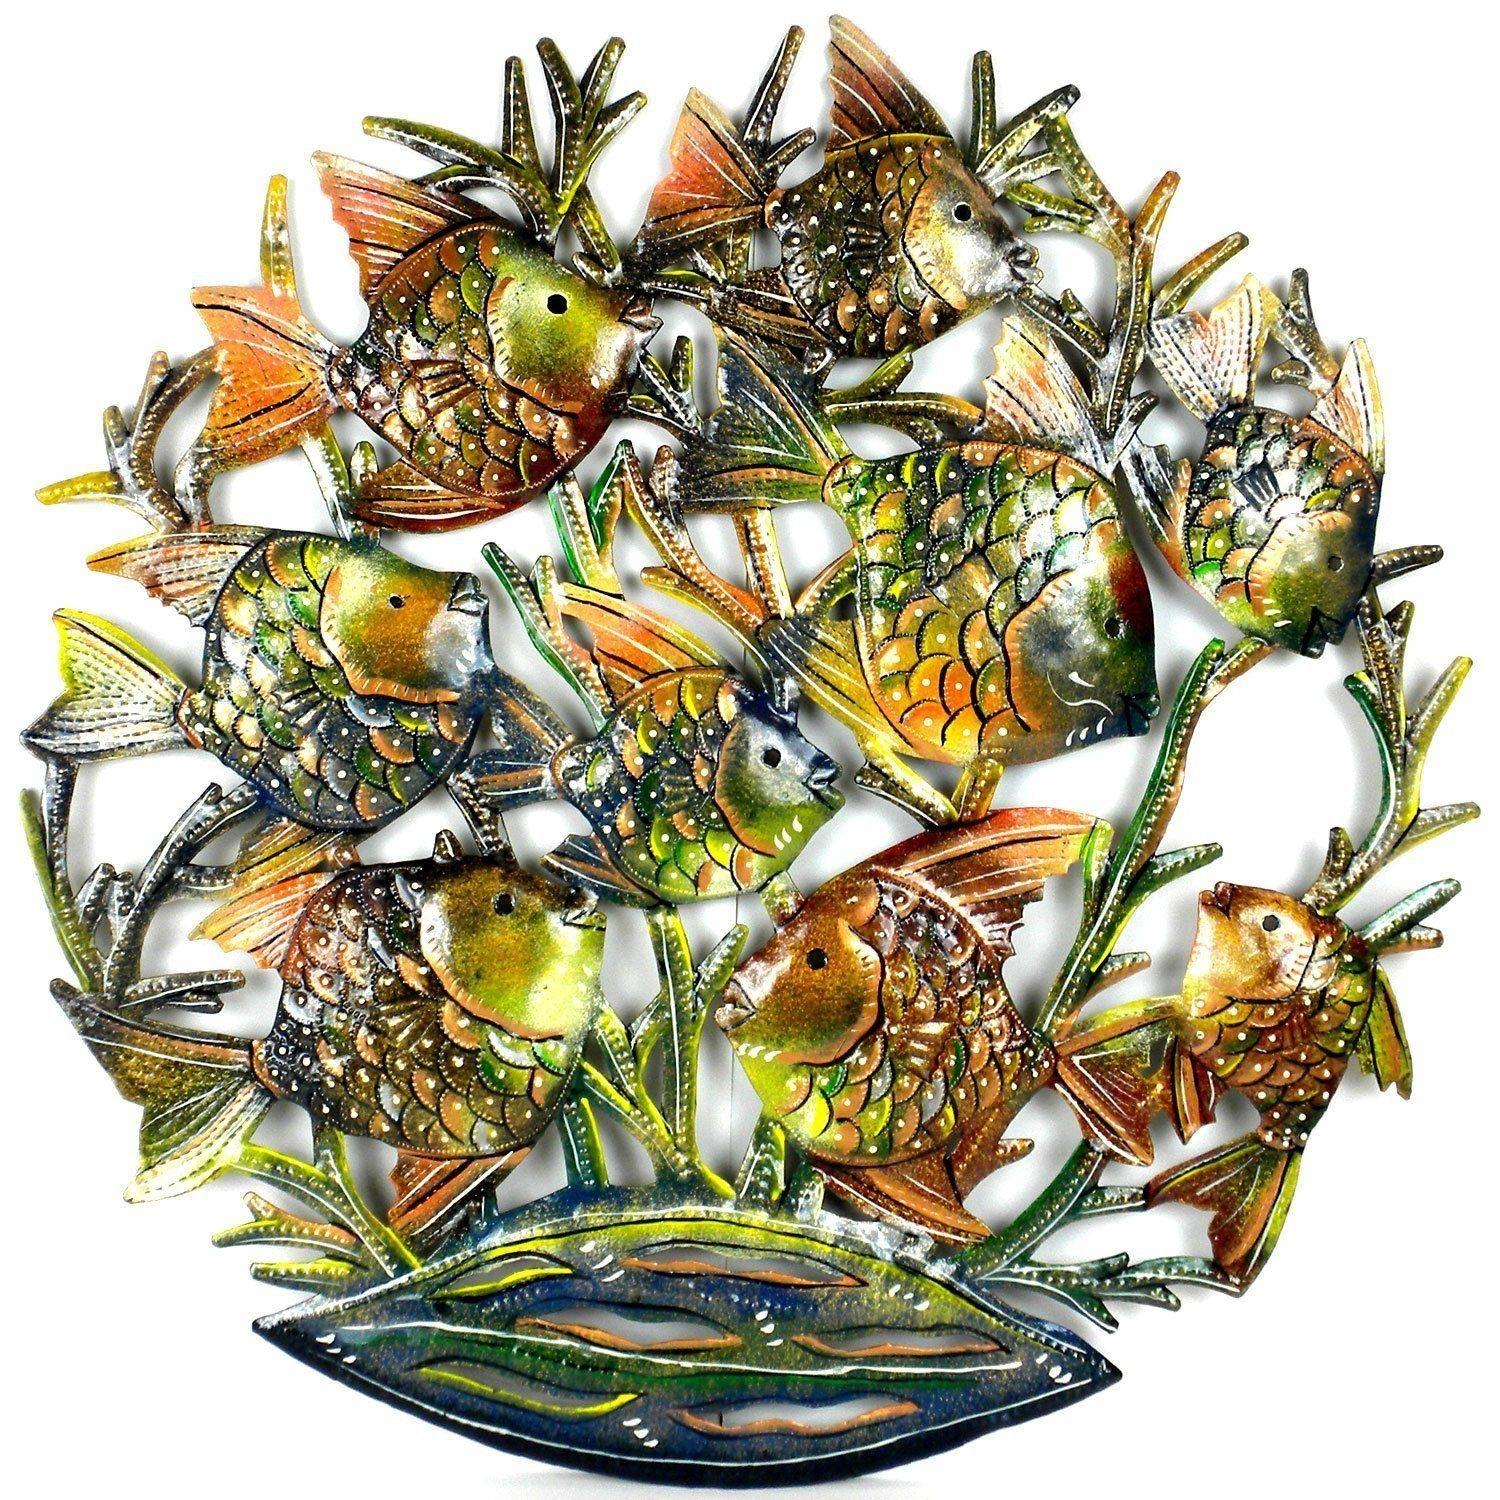 24 Inch Painted School Of Fish Metal Wall Art – Croix Des Bouquets Within 2017 School Of Fish Metal Wall Art (View 7 of 20)